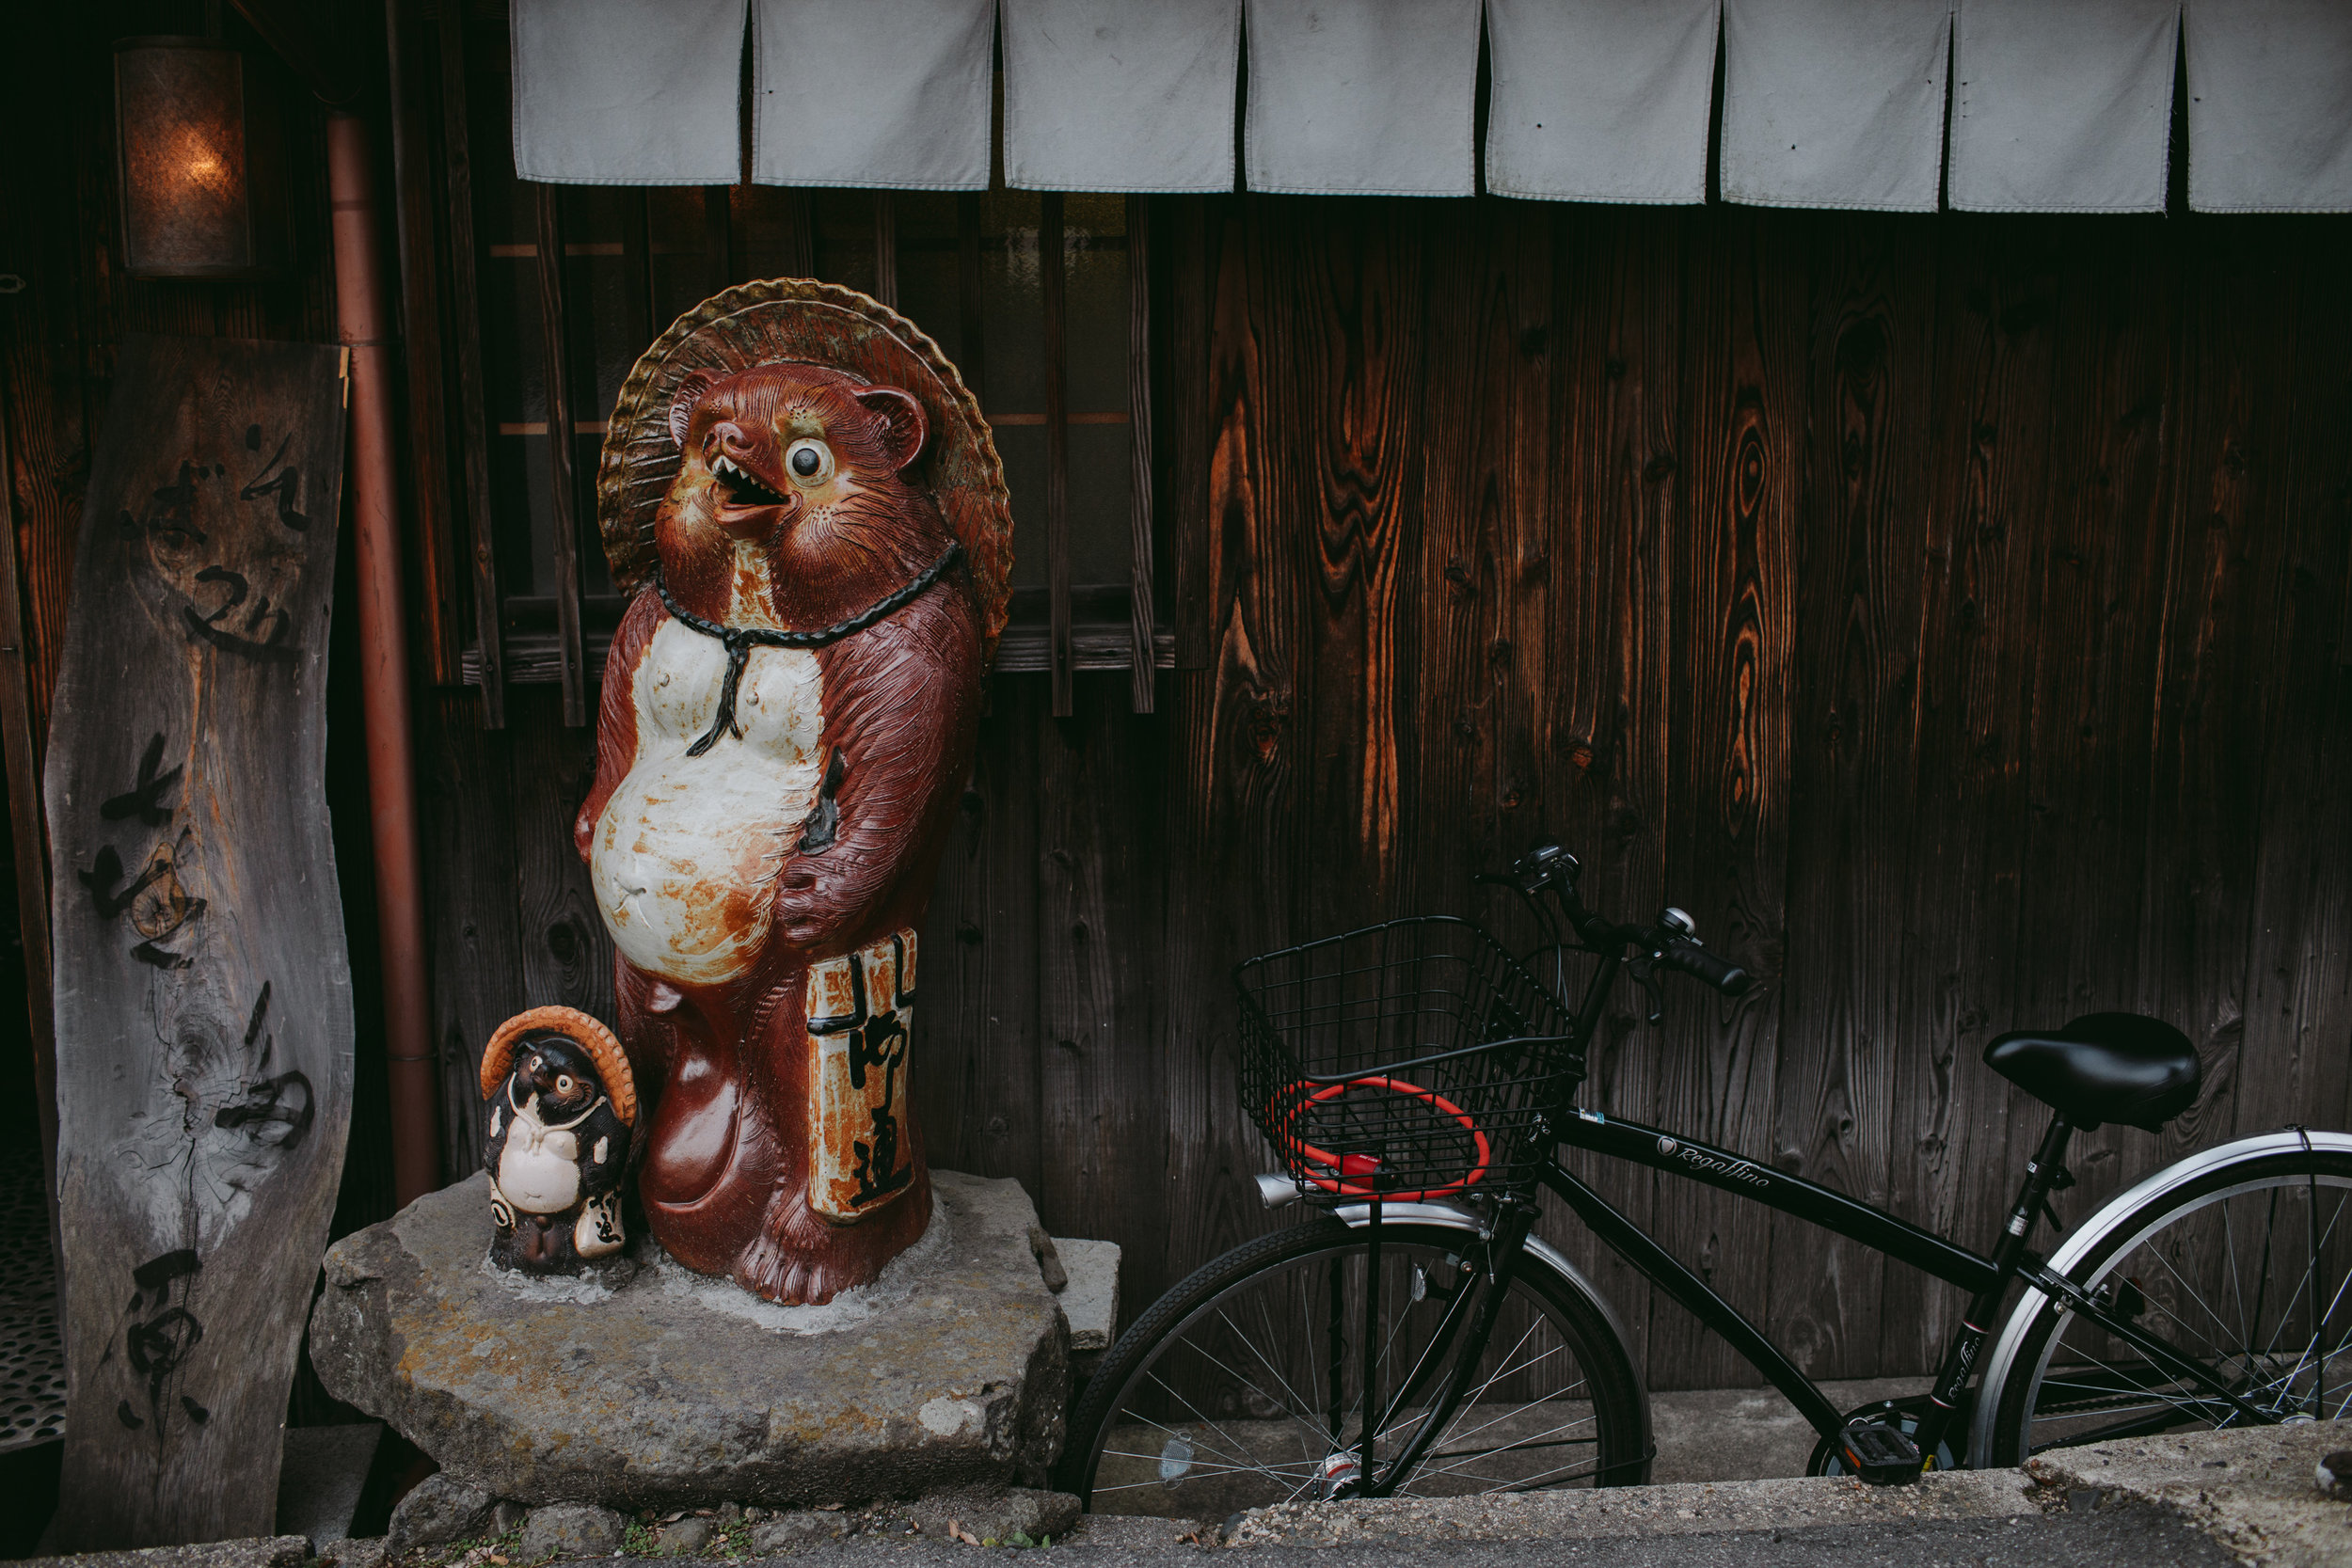 MikeSeehagel-commercial-lifestyle-travel-photography-Japan-67.jpg